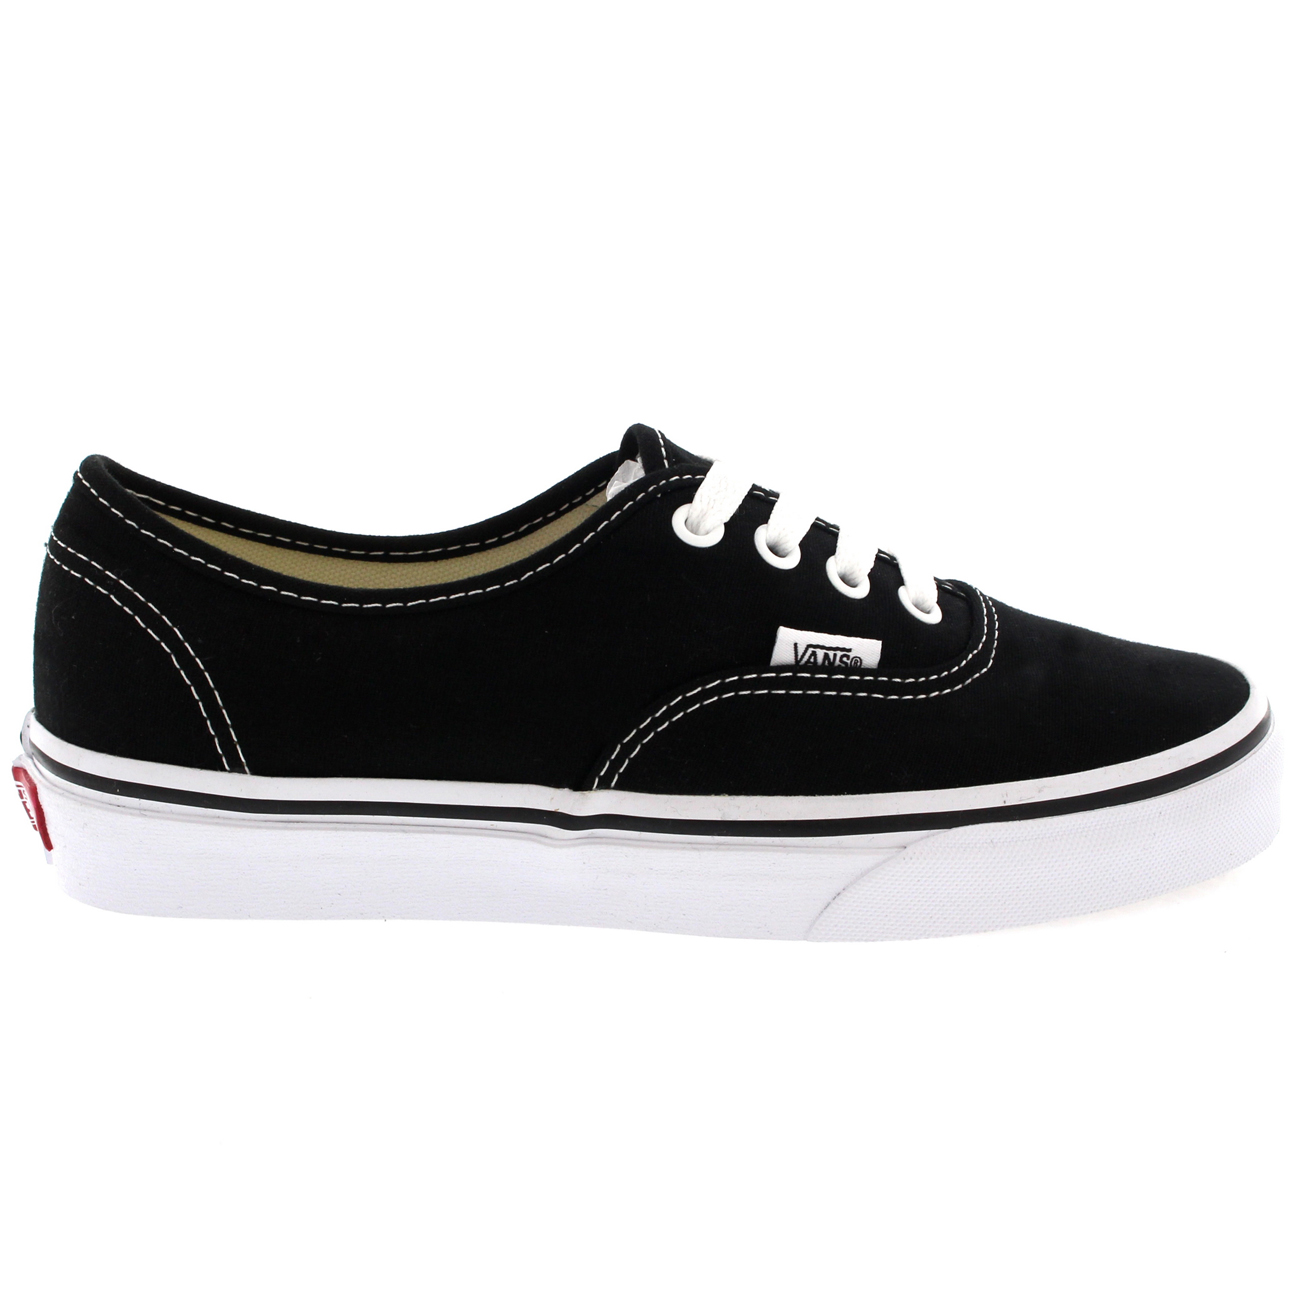 Alta qualit Vans Authentic UK vendita